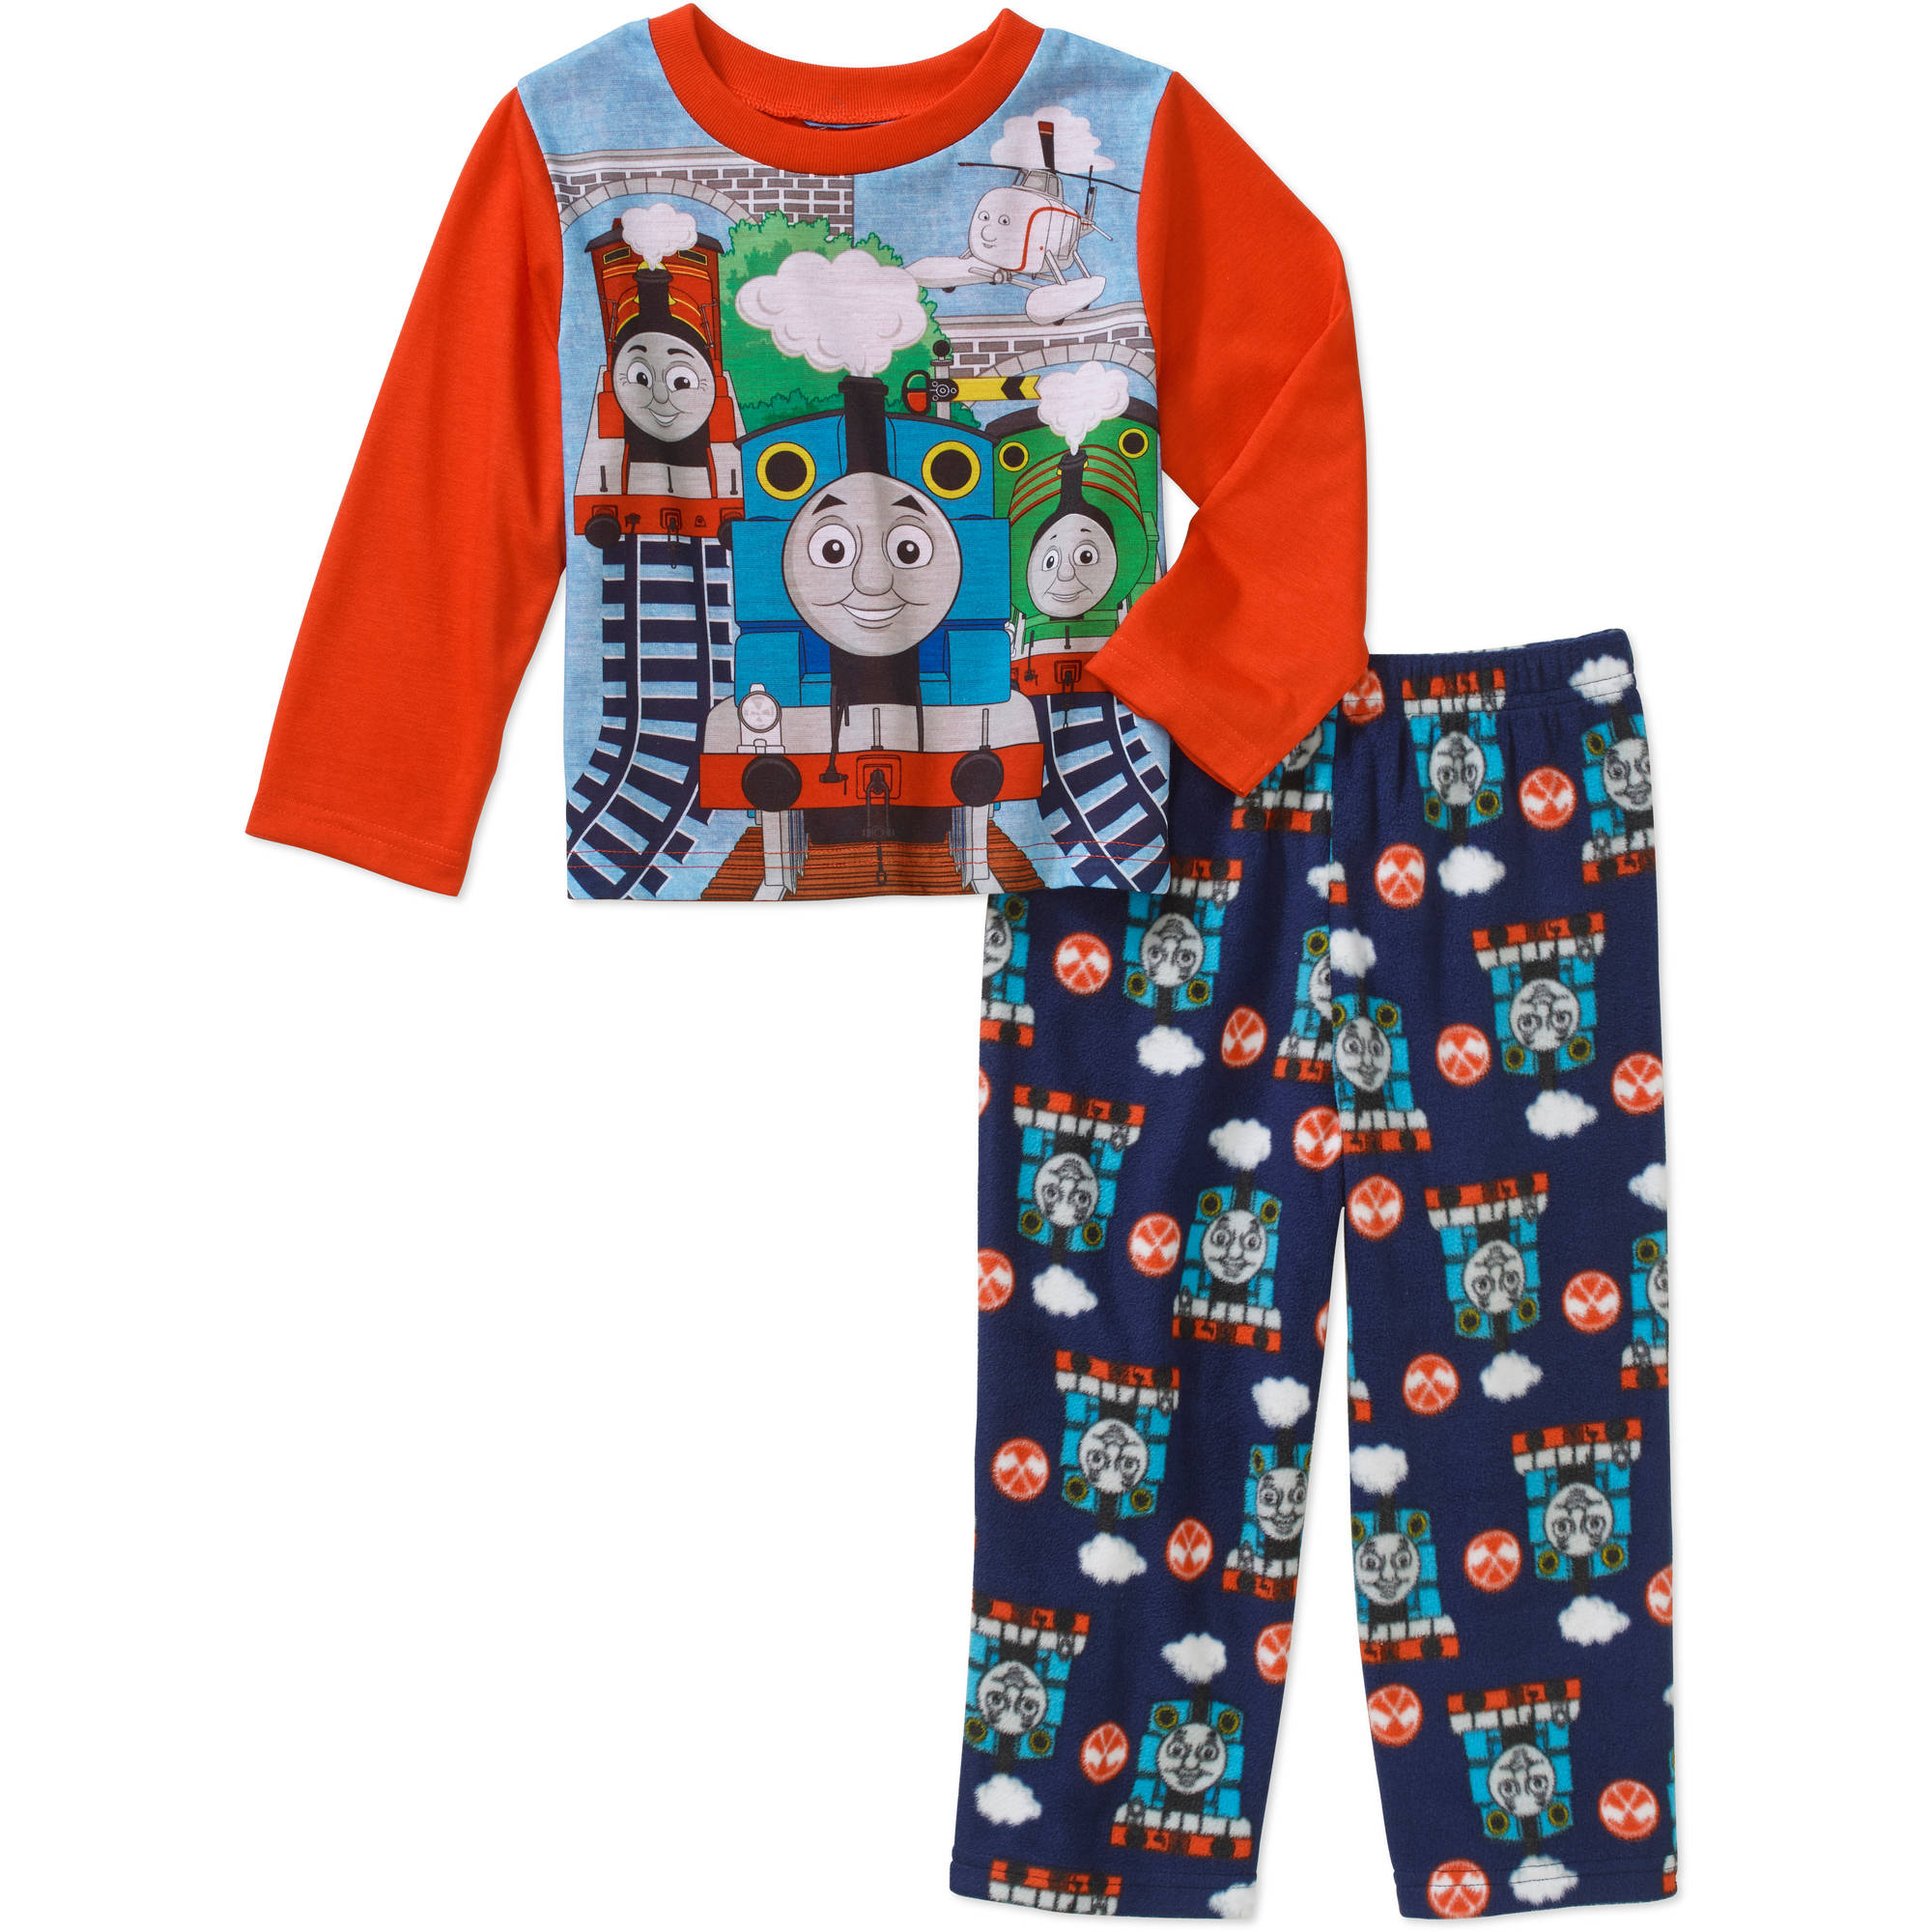 Thomas the Train Toddler Boys' Long Sleeve Top with Fleece Pants Pajama 2-Piece Set